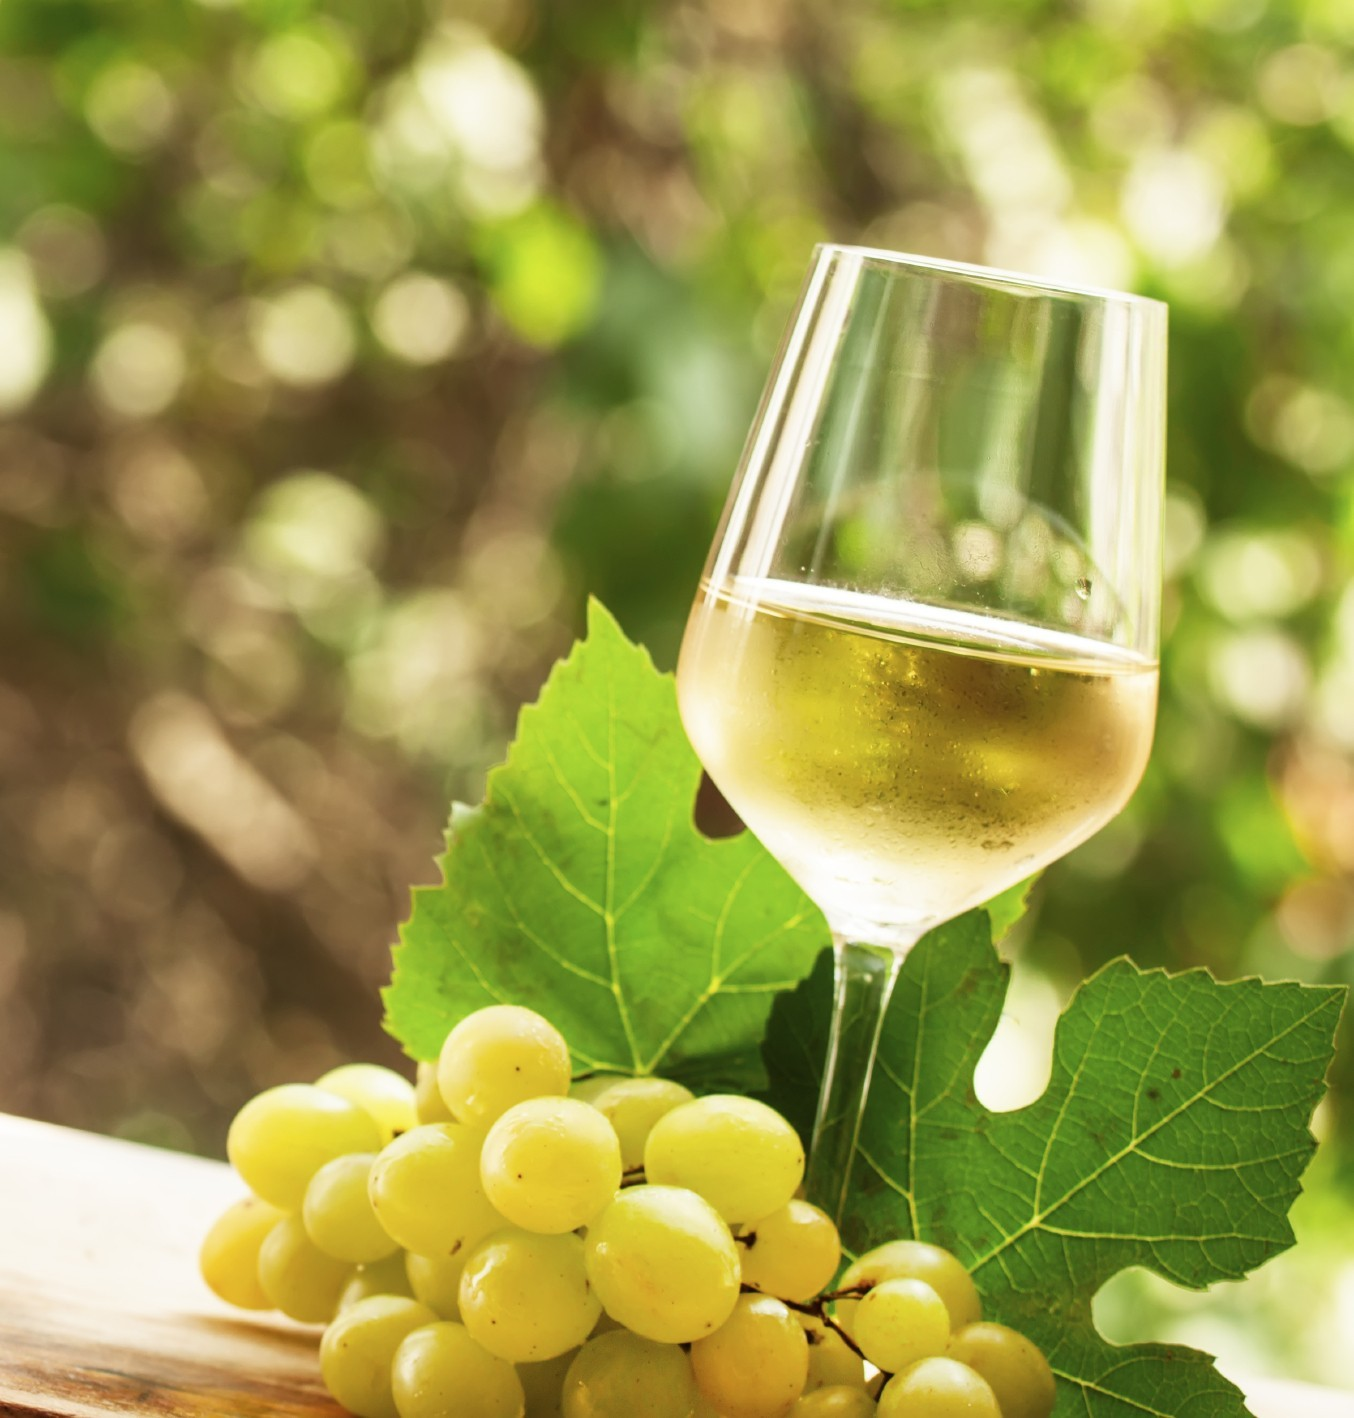 Grapes with wine and class photos